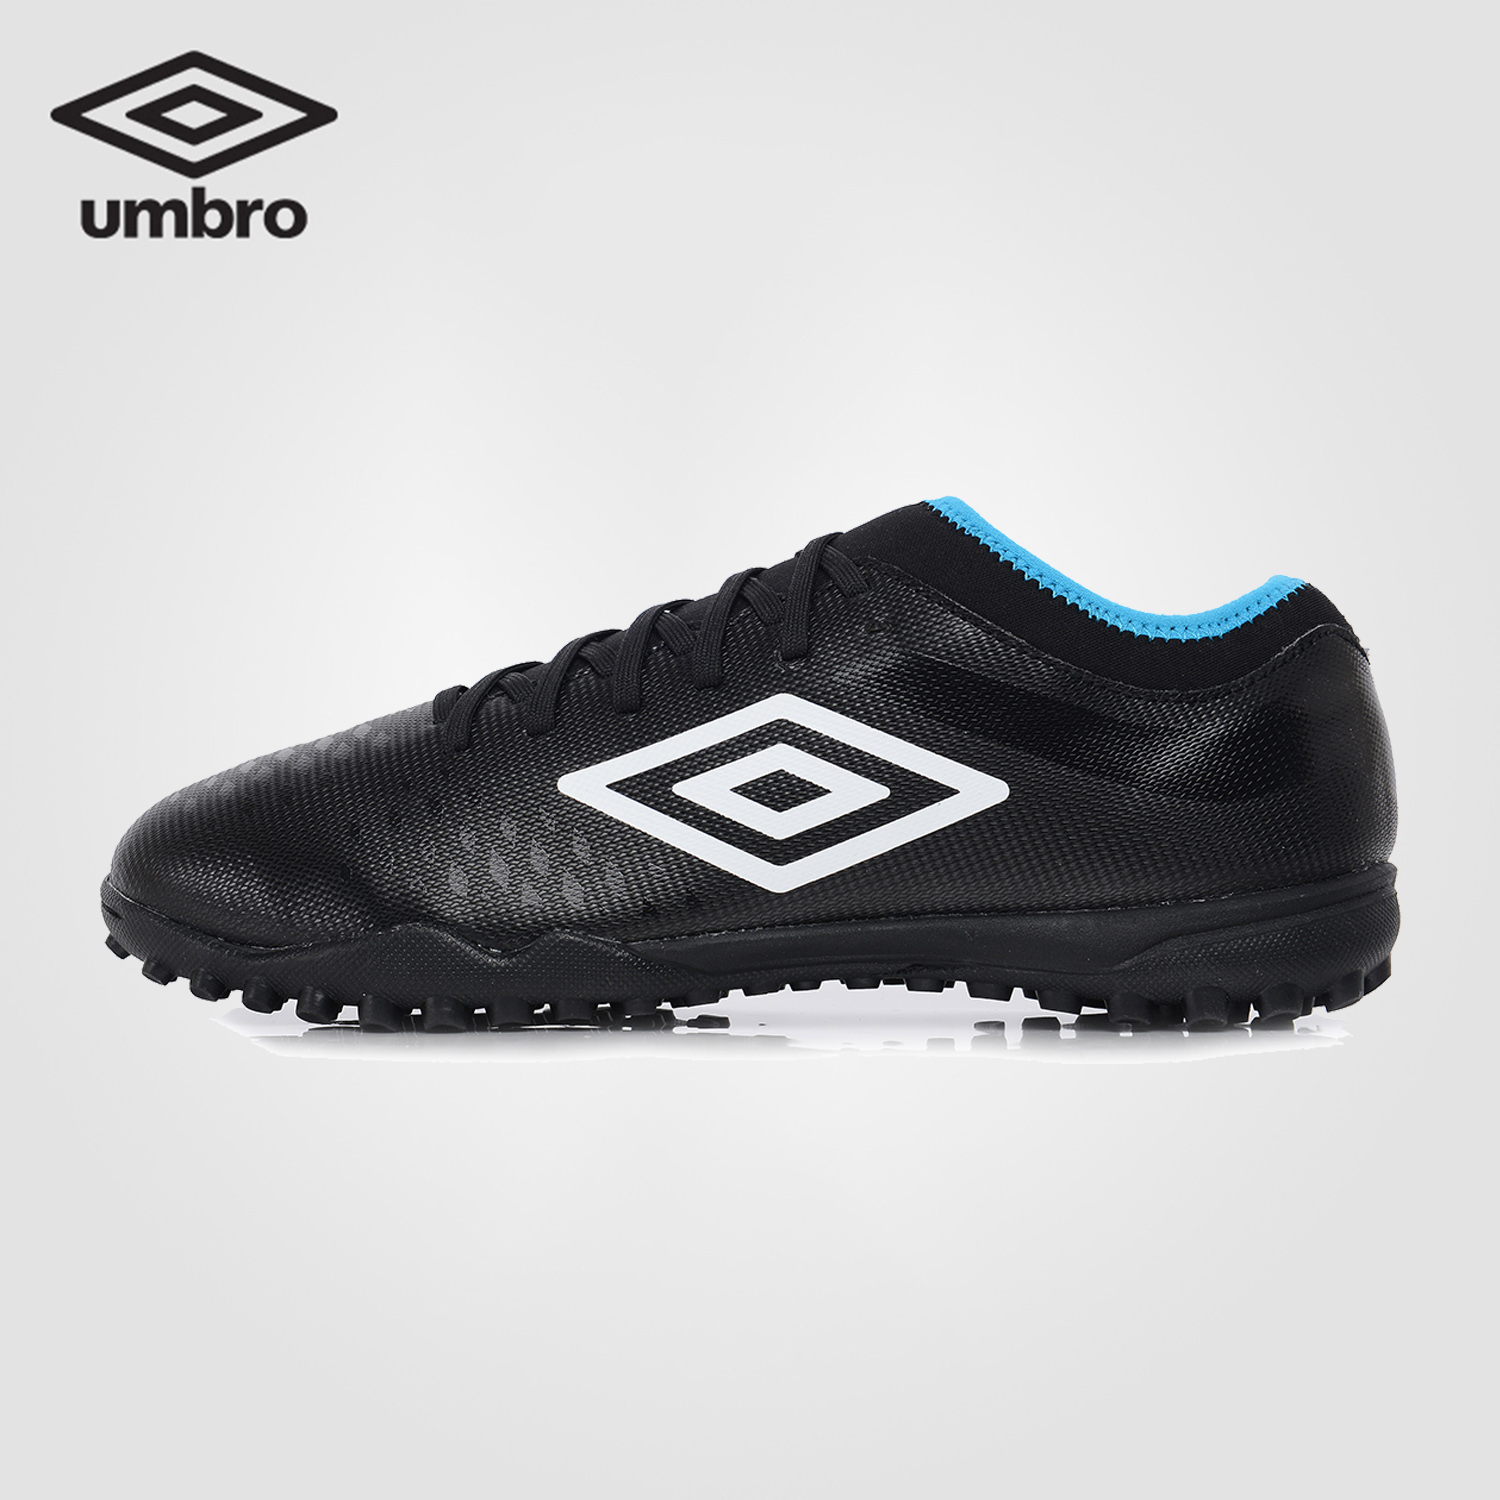 UMBRO Velocita 4 Club TF 茵宝男子碎钉足球鞋UI183FT0103